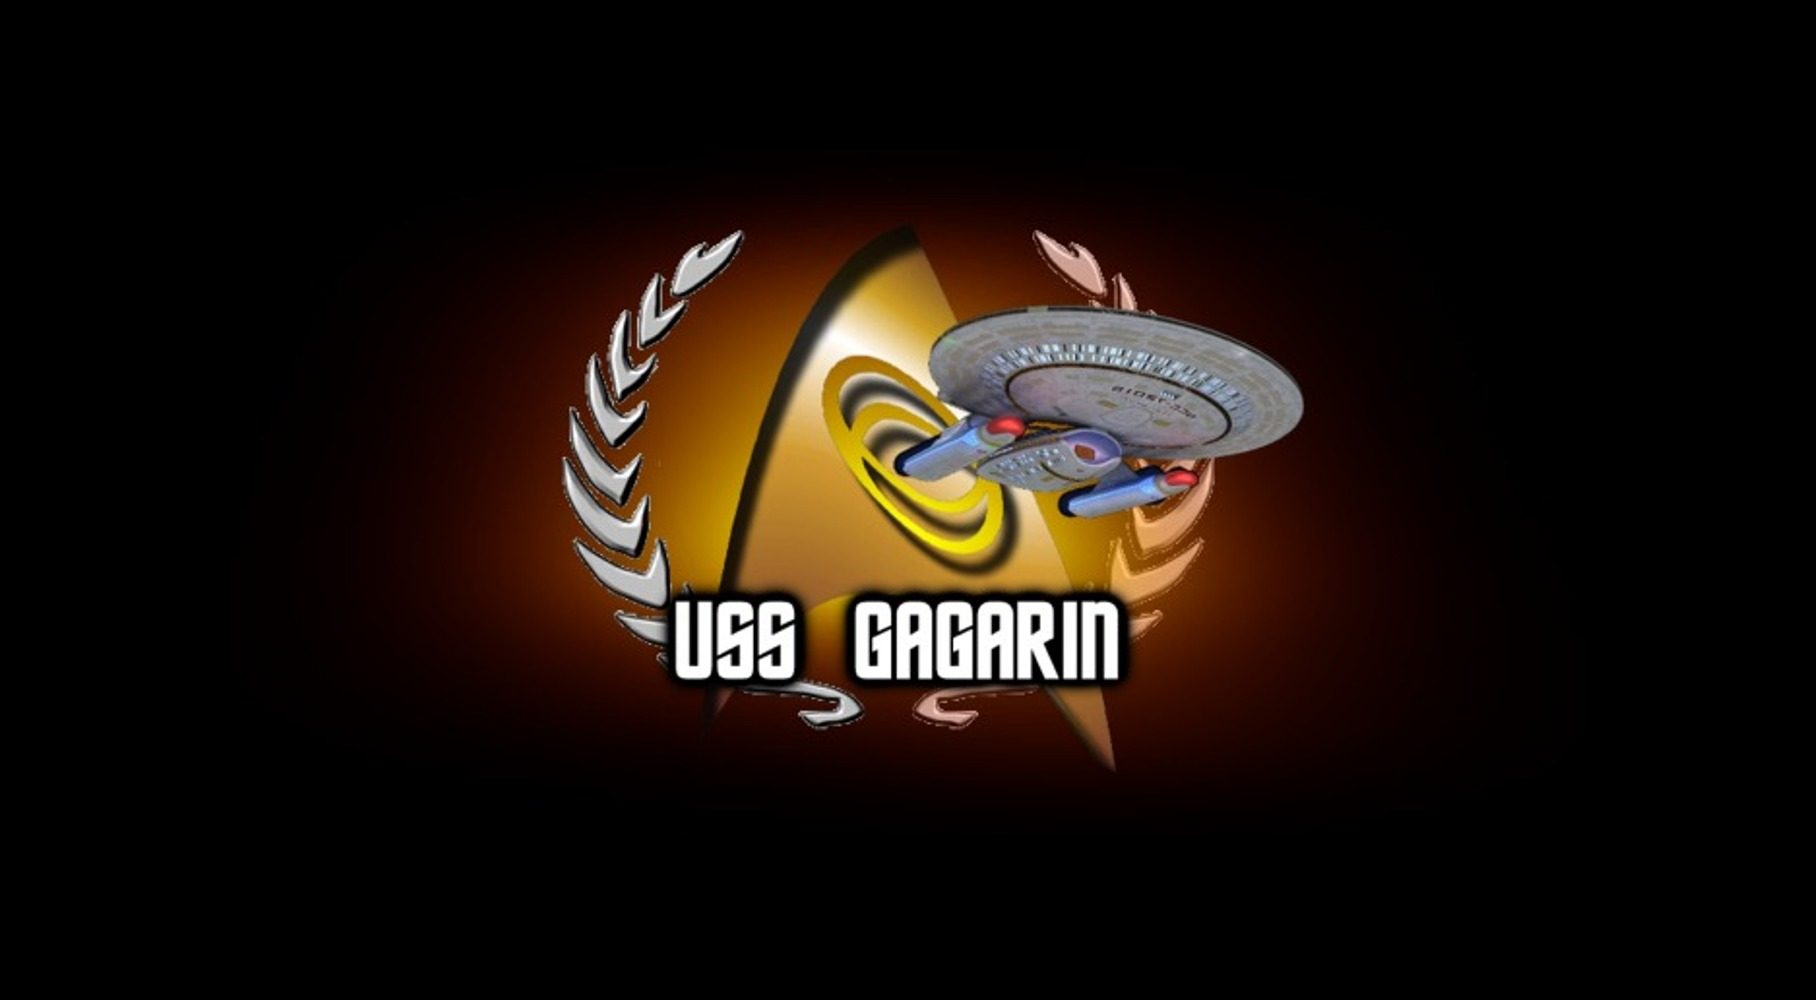 Star Trek images «The emblem of the spaceship USS Gagarin» [ «United Federation of Planets» ] HD wallpaper and background photos